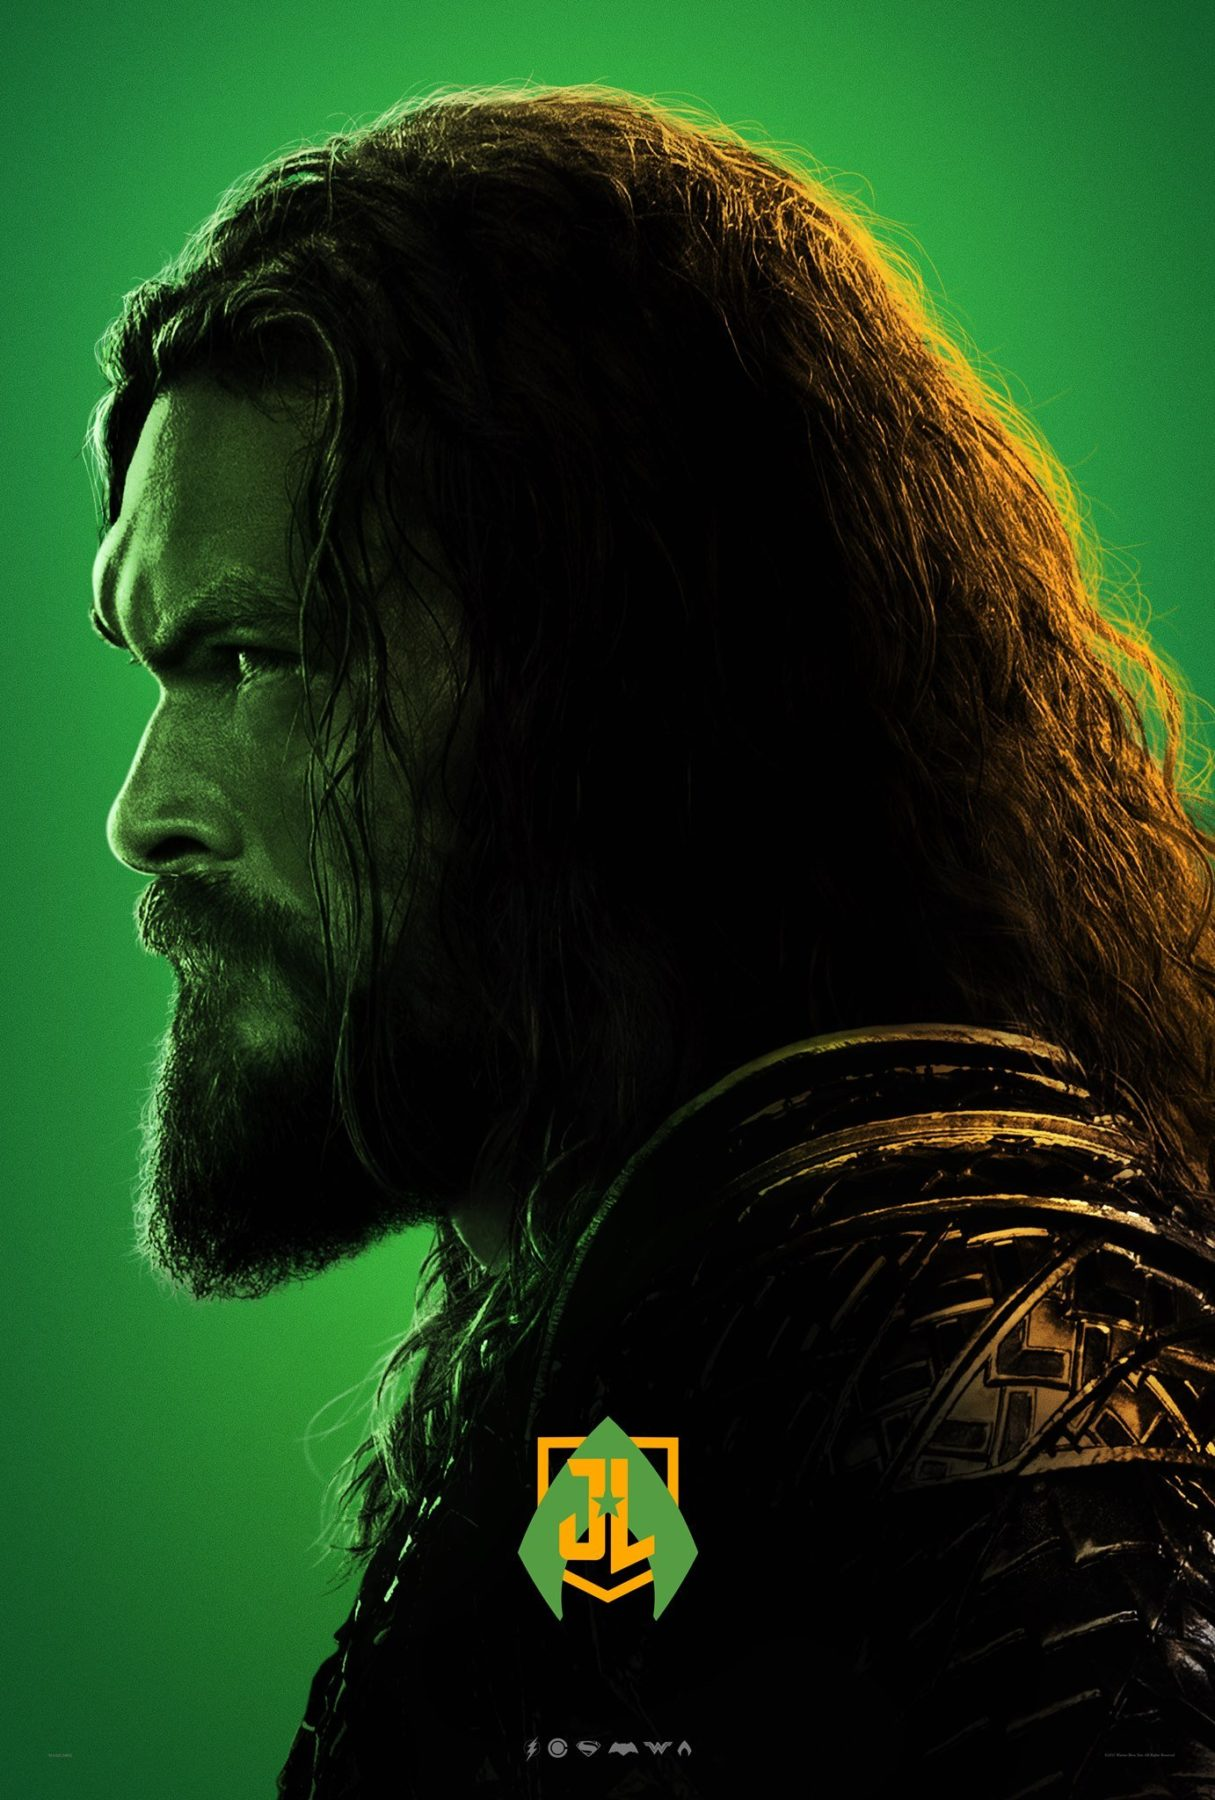 Justice League character posters (3)